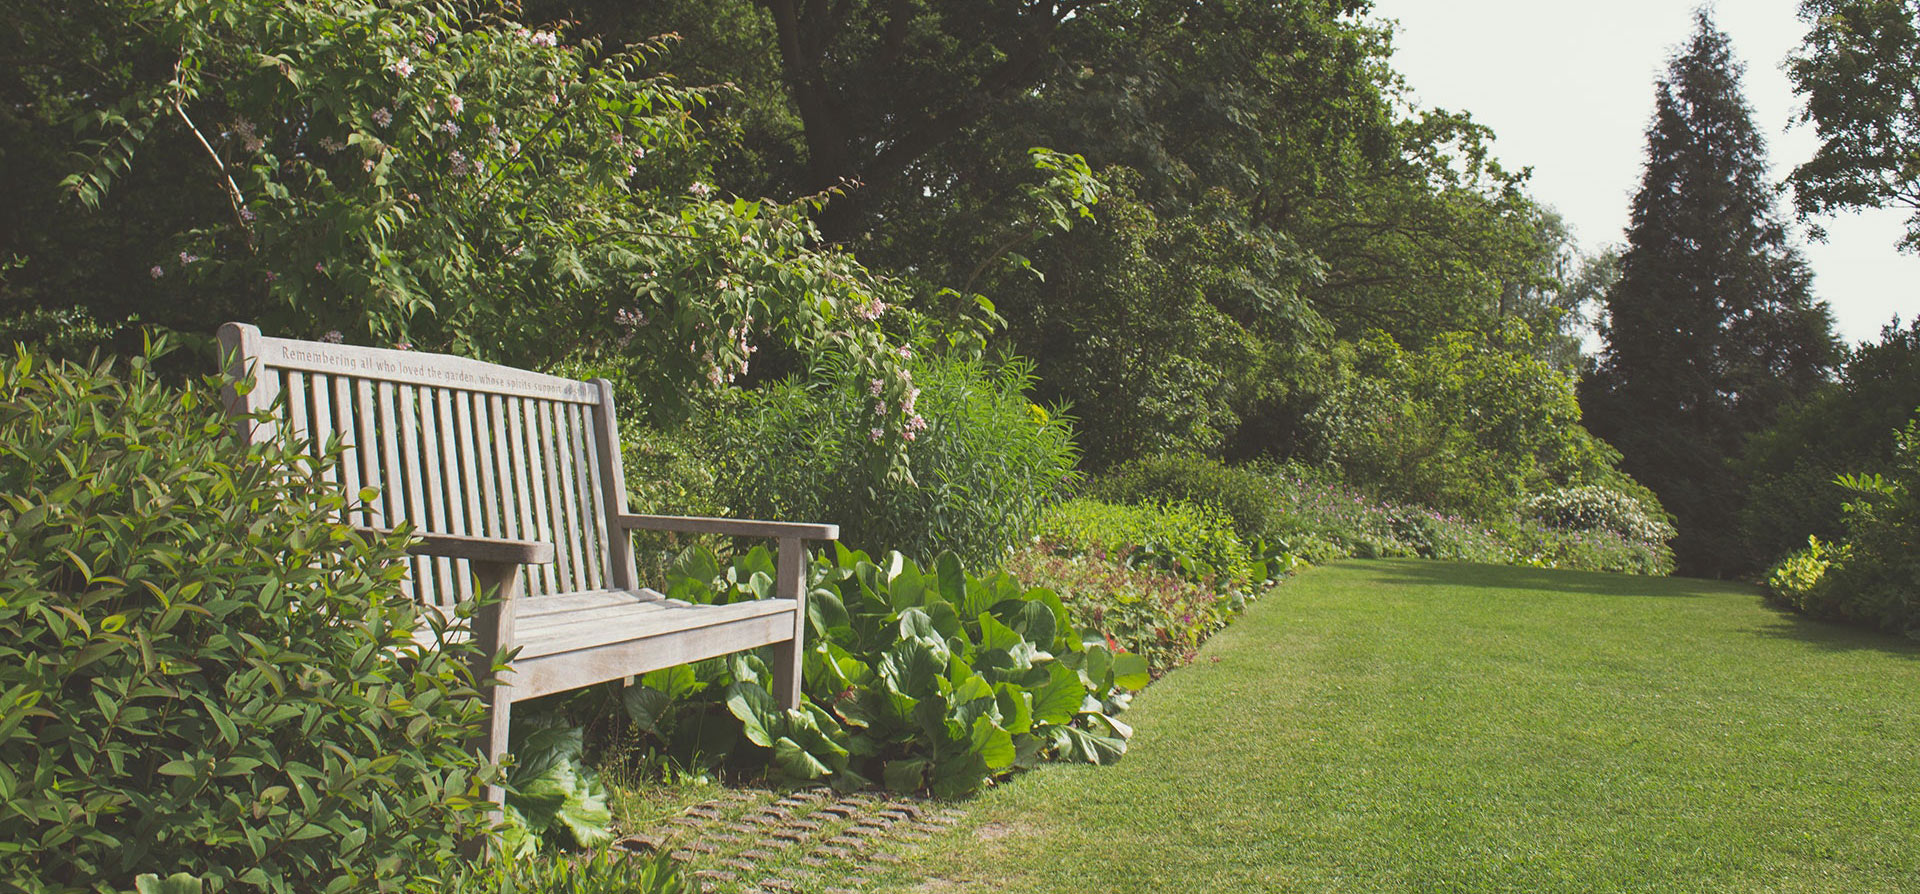 Garden Services in Surrey